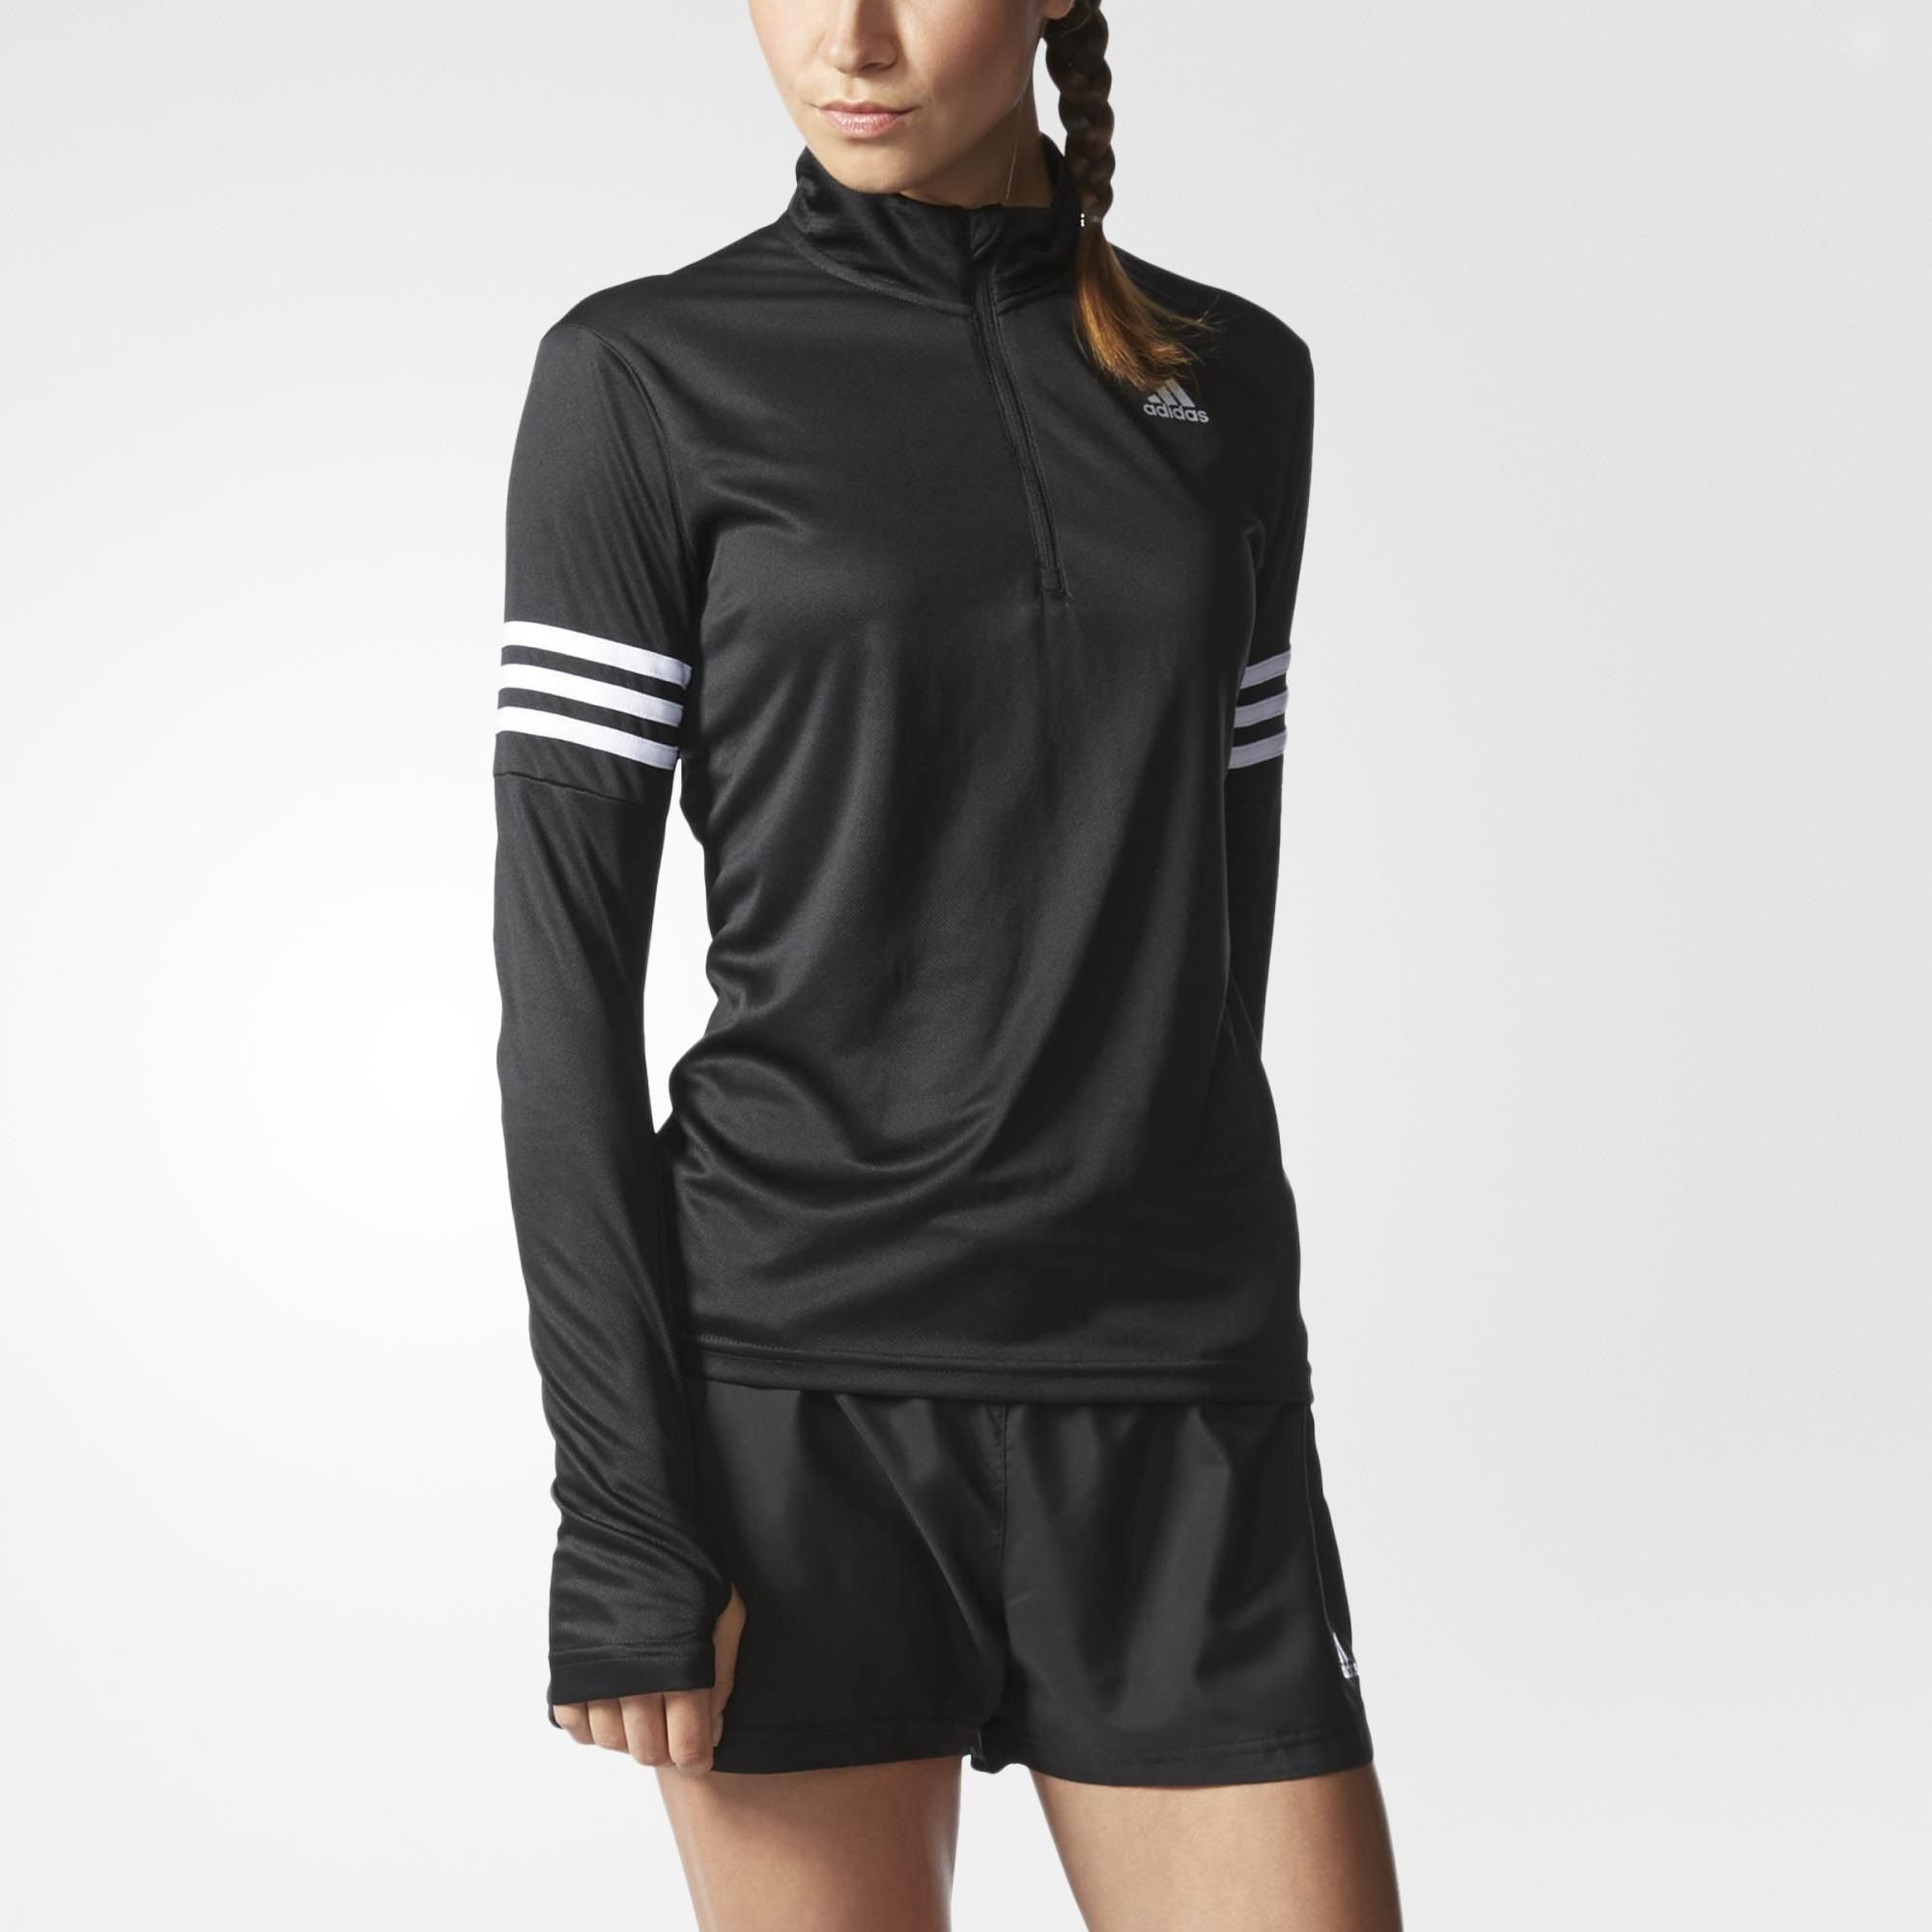 This women's half-zip running shirt helps sweep sweat out of your way. Made from moisture-wicking climalite® fabric with recycled content, it features thumb holes on the sleeves that keep them from riding up. This product is part of the Better Place Program: Products are built in a sustainable way to make the world a better place.